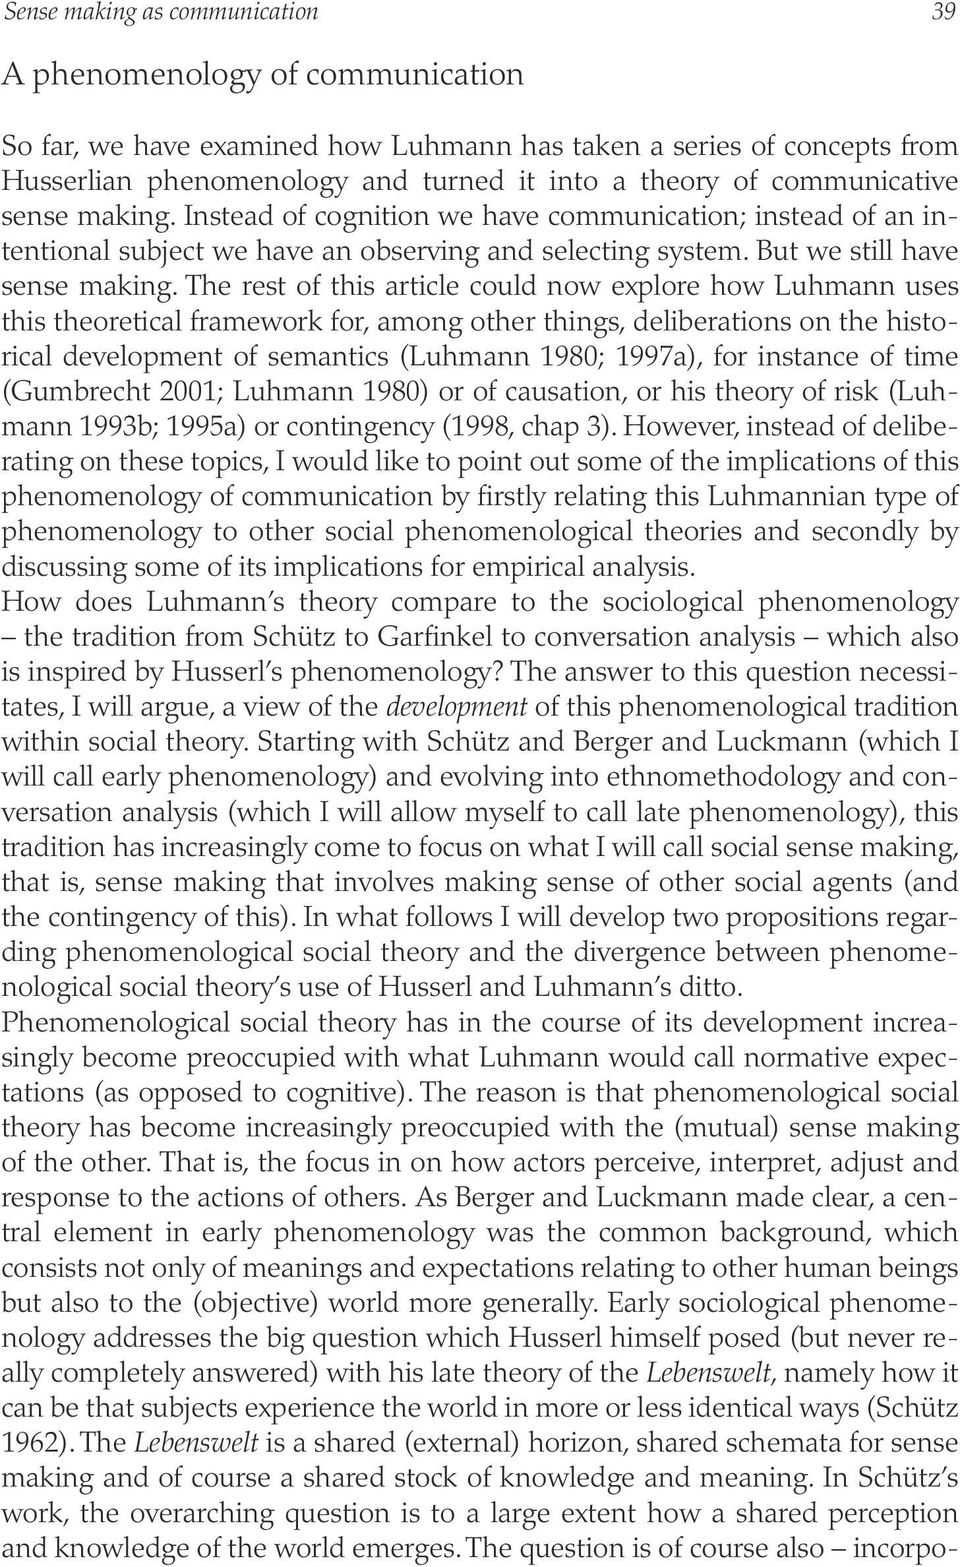 The rest of this article could now explore how Luhmann uses this theoretical framework for, among other things, deliberations on the historical development of semantics (Luhmann 1980; 1997a), for